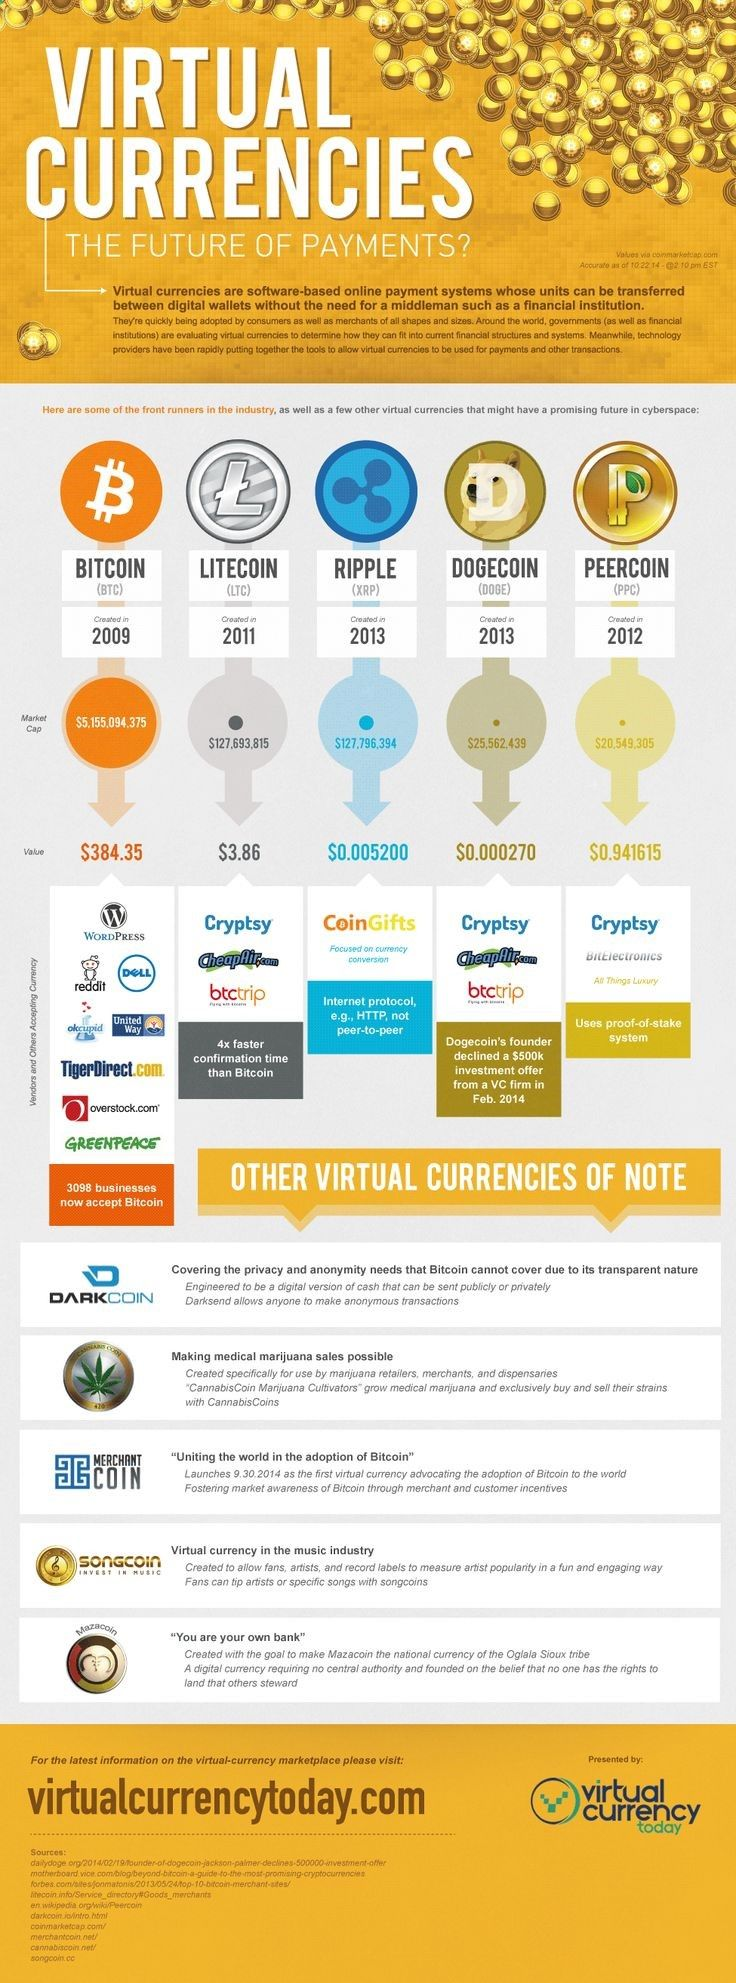 Trade Finance Business - Virtual Currencies The Future of Payments? #Currency #Bitcoins #Finance Advanced Mining Technologies Inc. (AMT Miners) www.amtminers.com - Whether you wish to be a successful Scalper, Day Trader, Swing Trader, ot Position Trader ANY financial instrument can be traded including: Forex, Futures, Commodities, Stocks, E-Minis, Metals, Binary Options, Any Market.